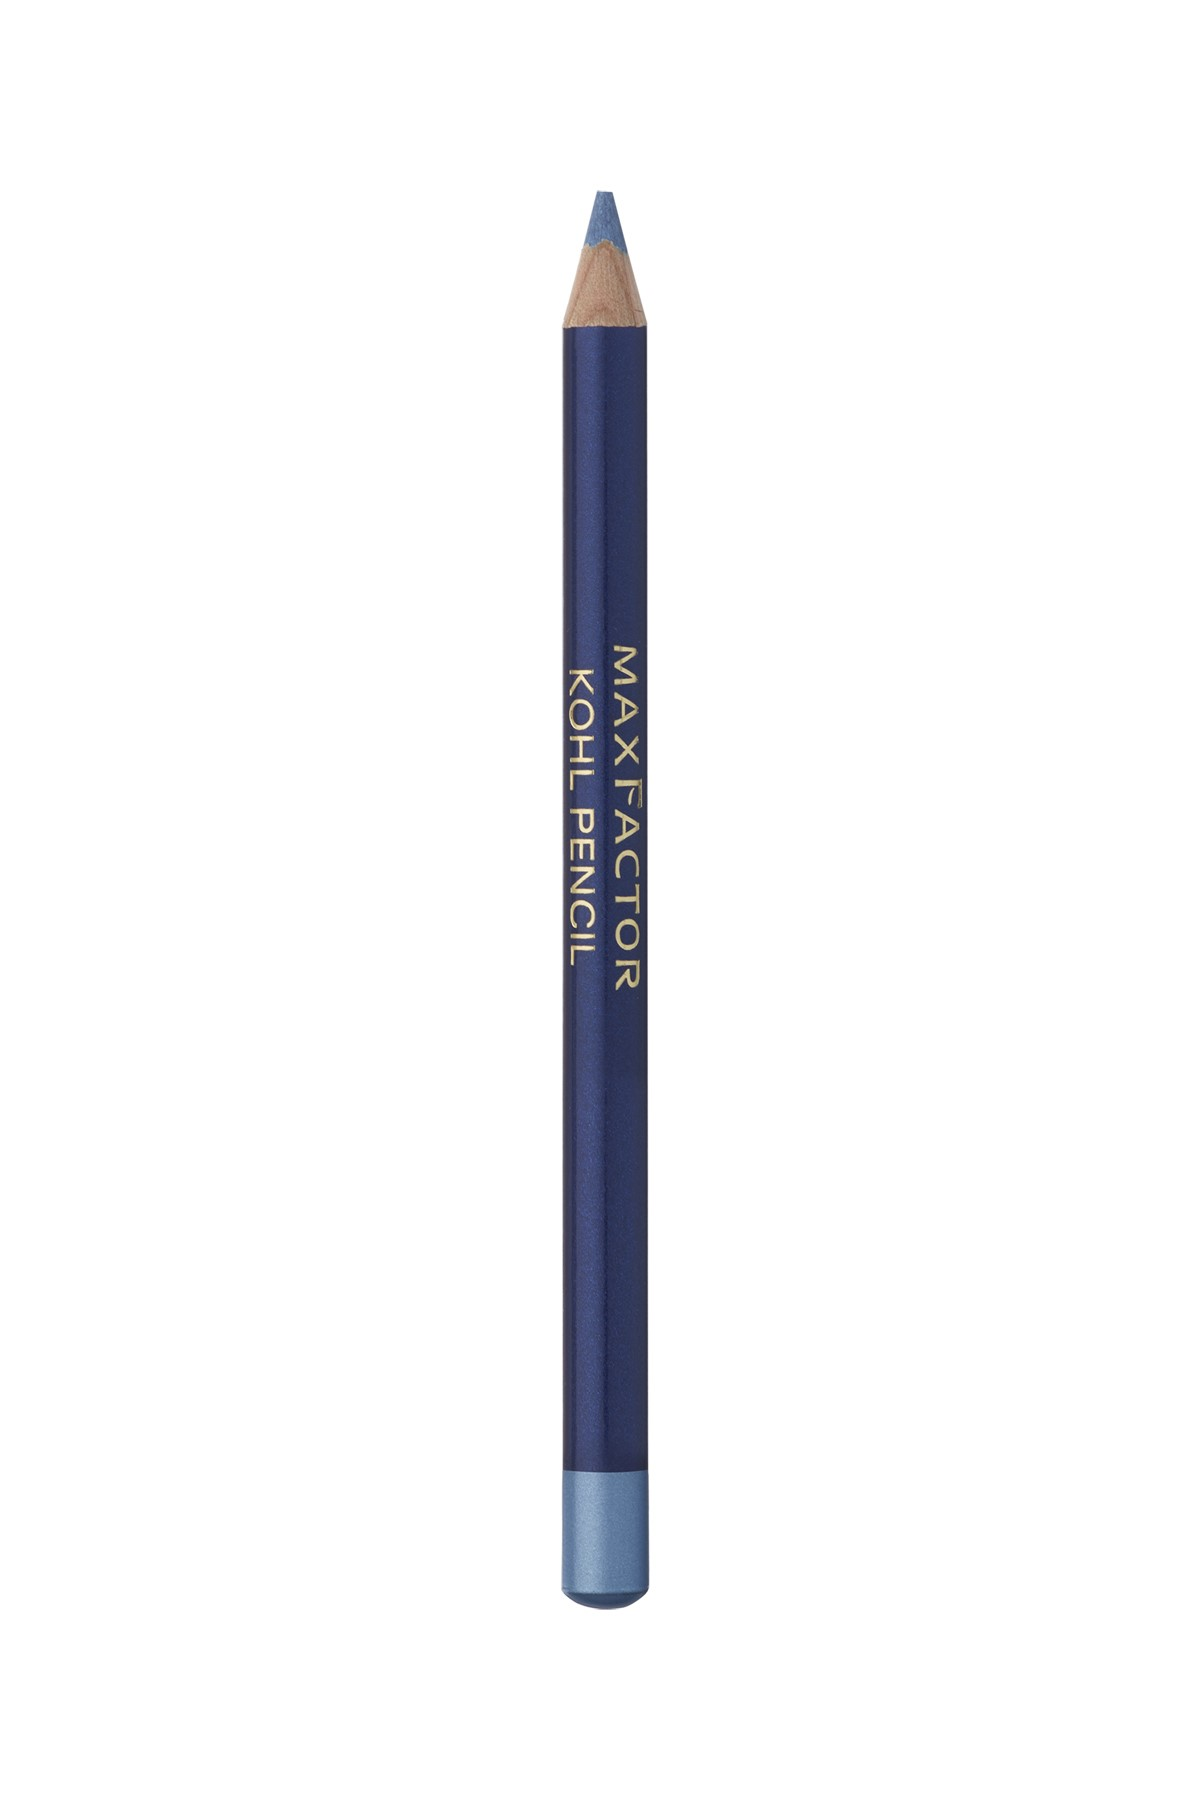 Max Factor Kohl Pencil Göz Kalemi 60 Ice Blue